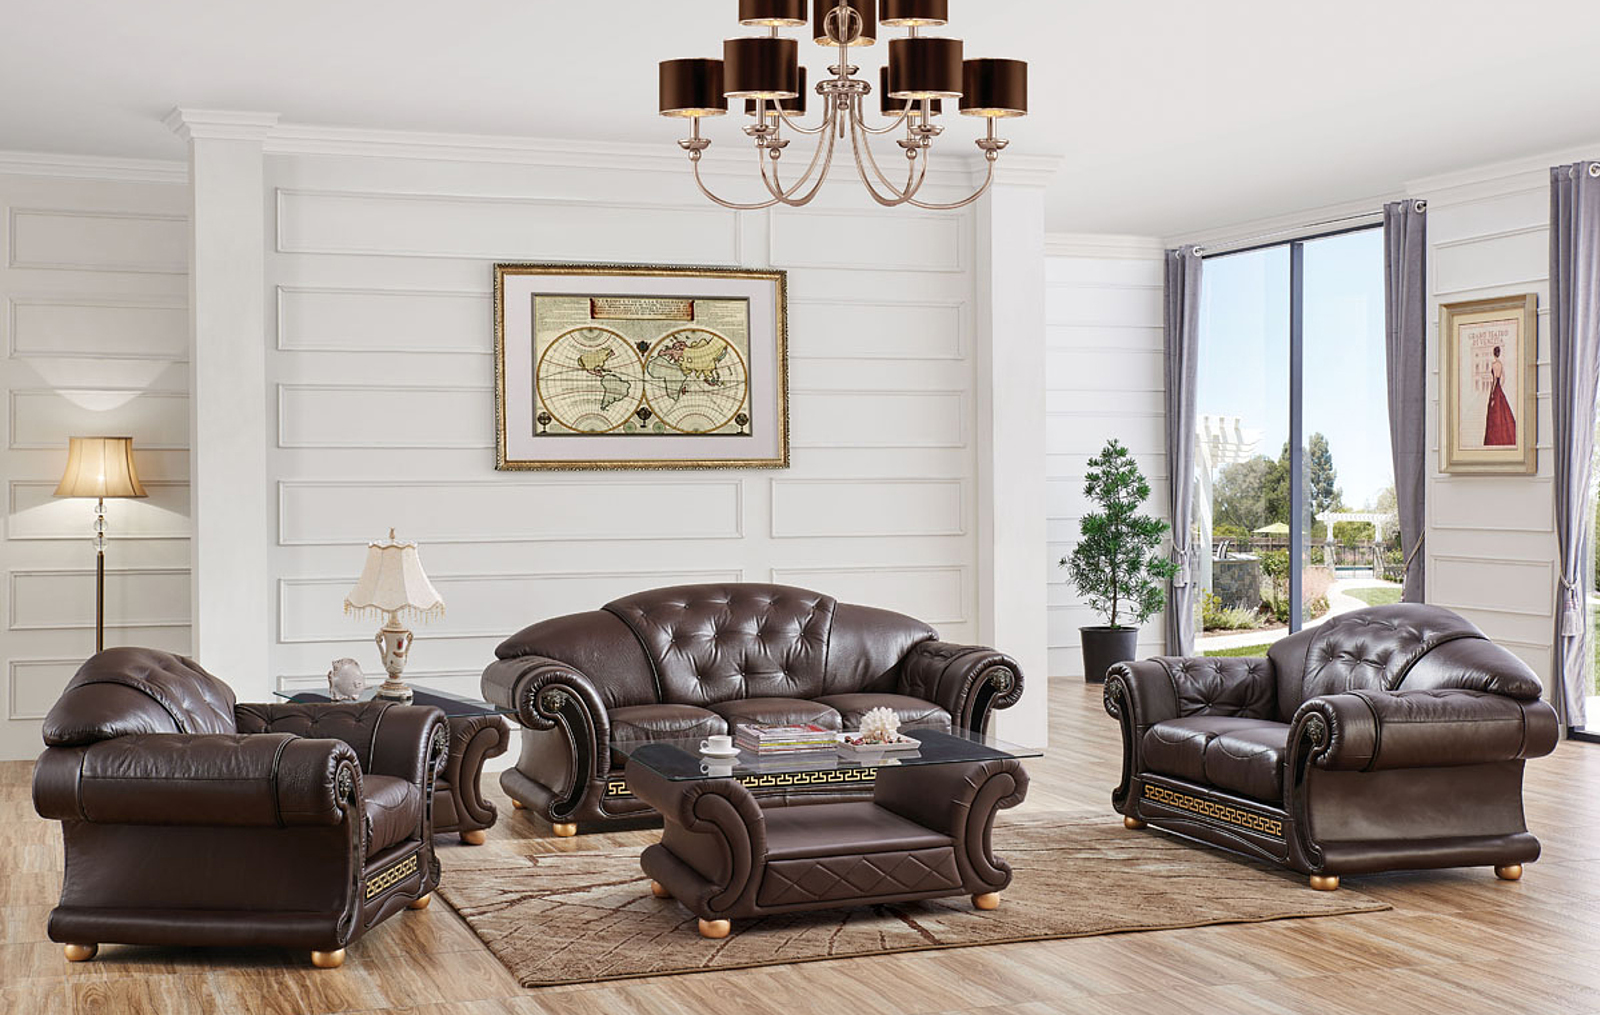 Apolo Brown, Sofas Loveseats and Chairs, Living Room Furniture